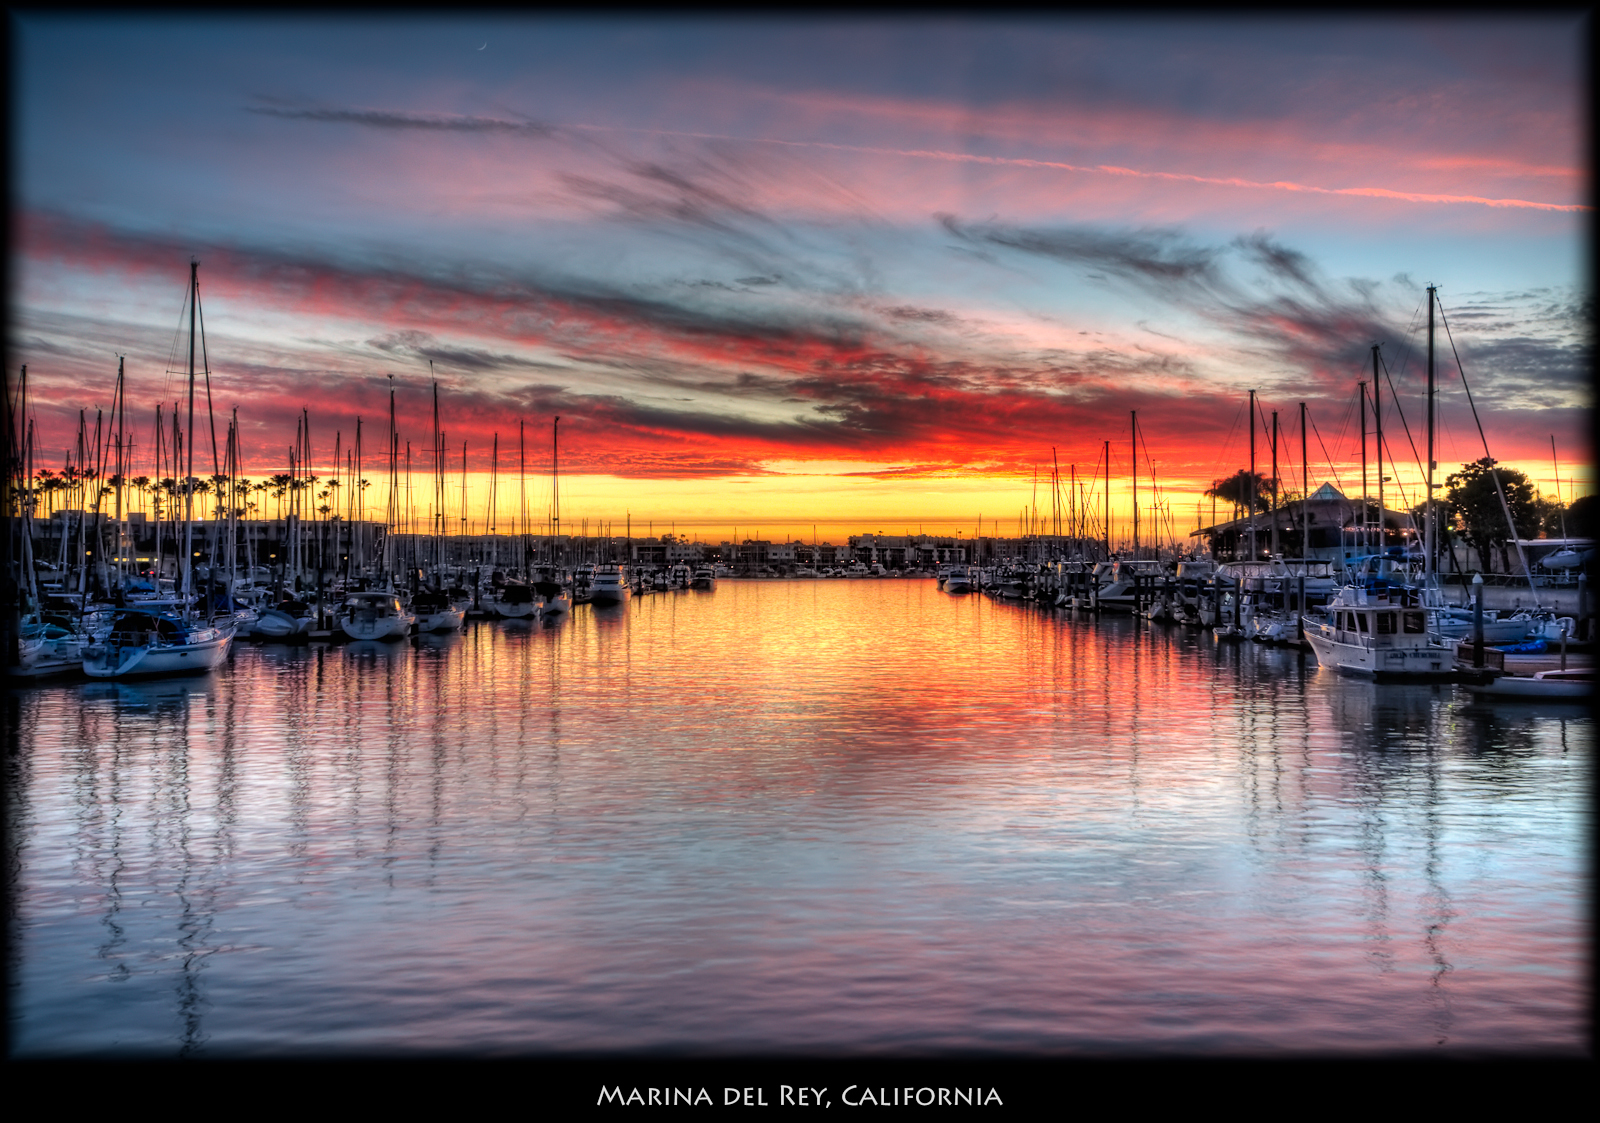 Marina del Rey sunset shot from one of tham main canals.